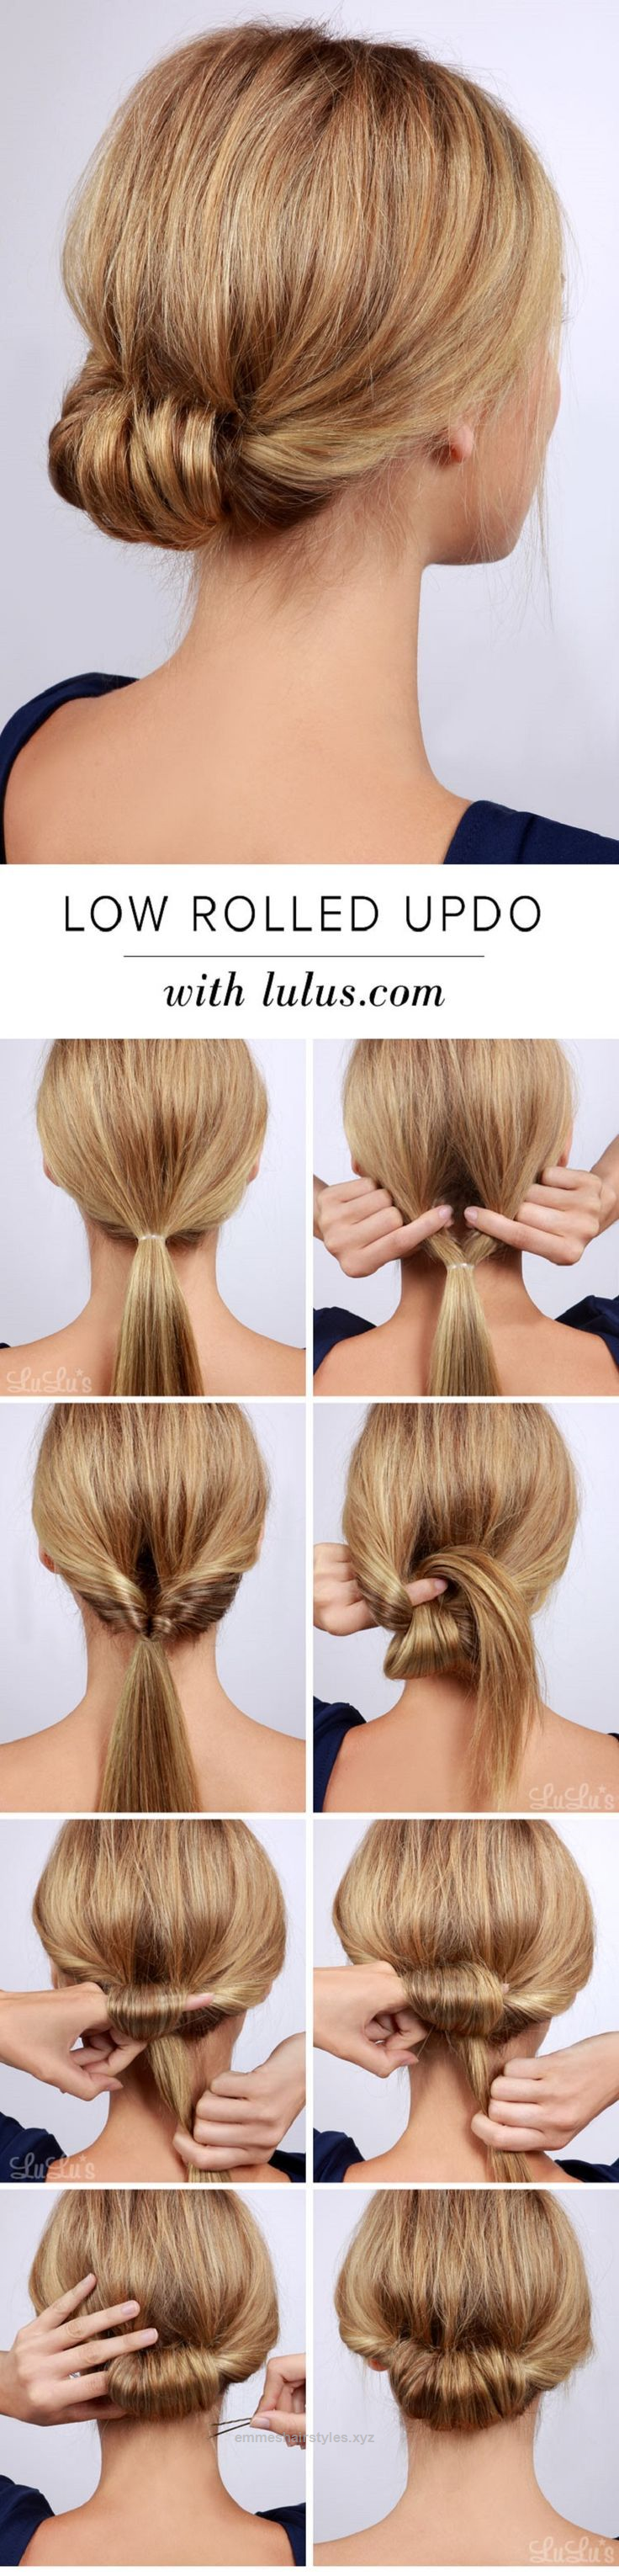 Low rolled updo hair care u style insights pinterest hair